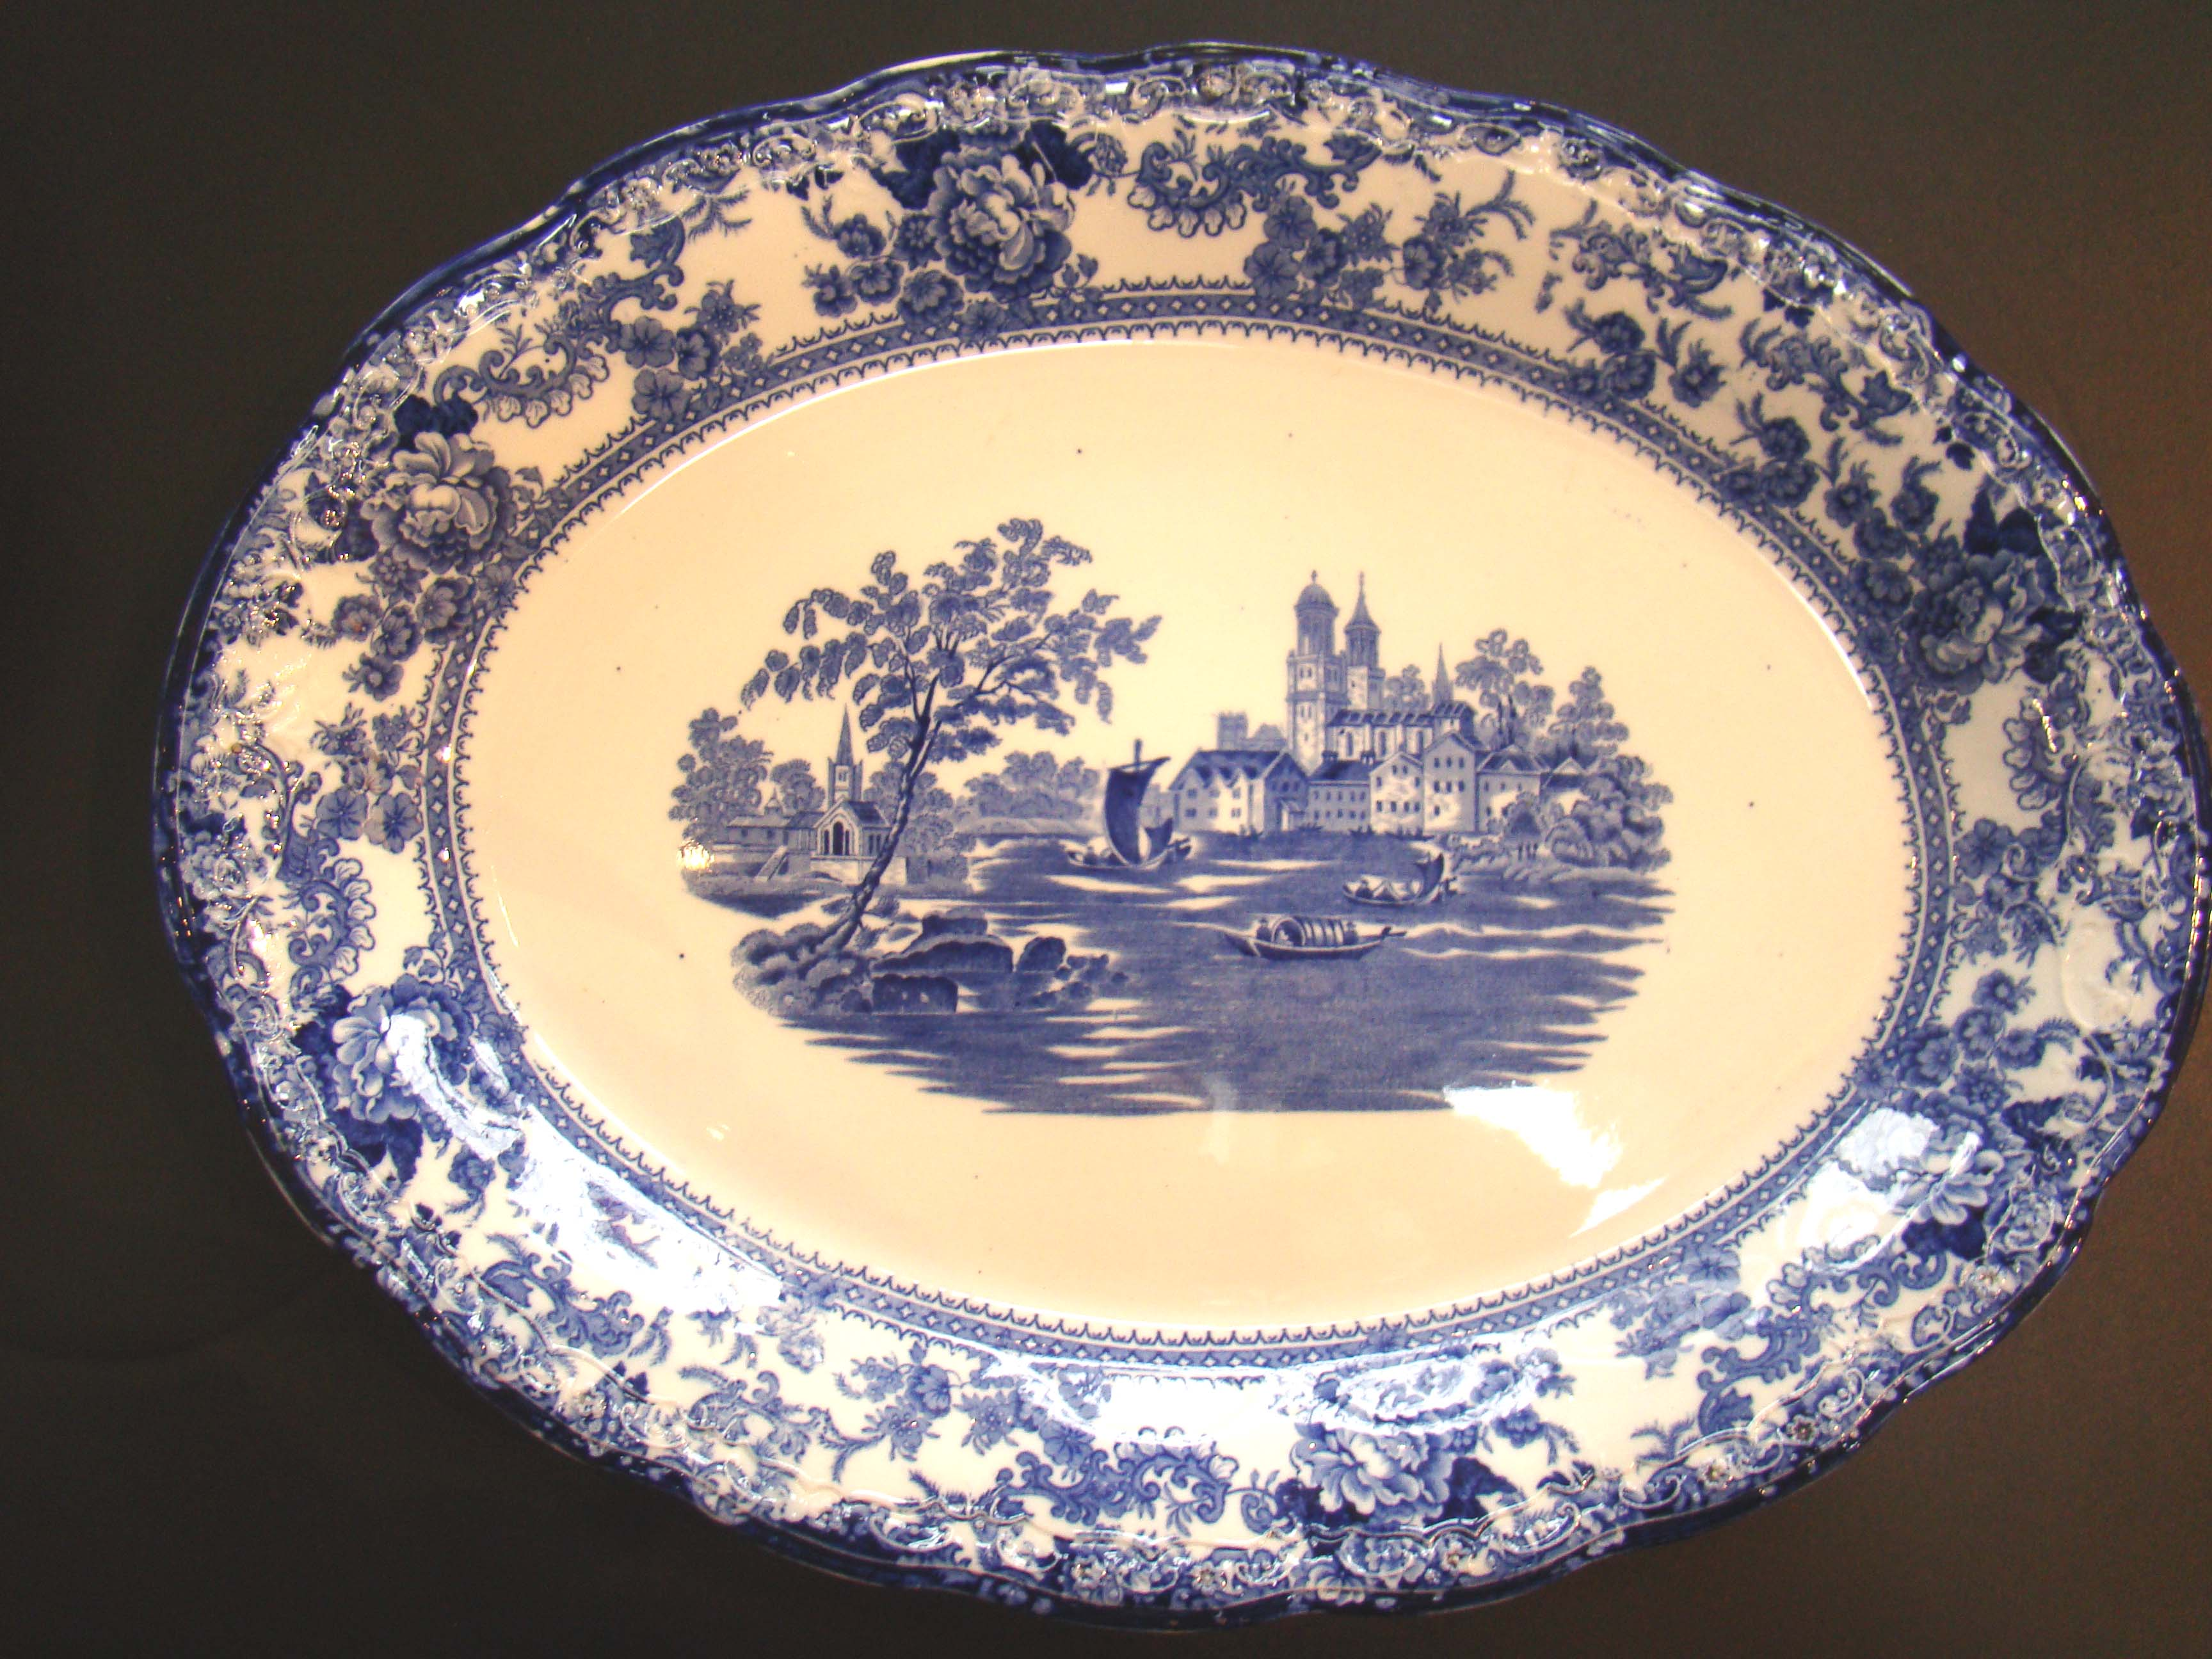 click to view larger image of A beautiful antique flow blue serving platter by Colonial Pottery of Stoke, England, circa 1880-1900